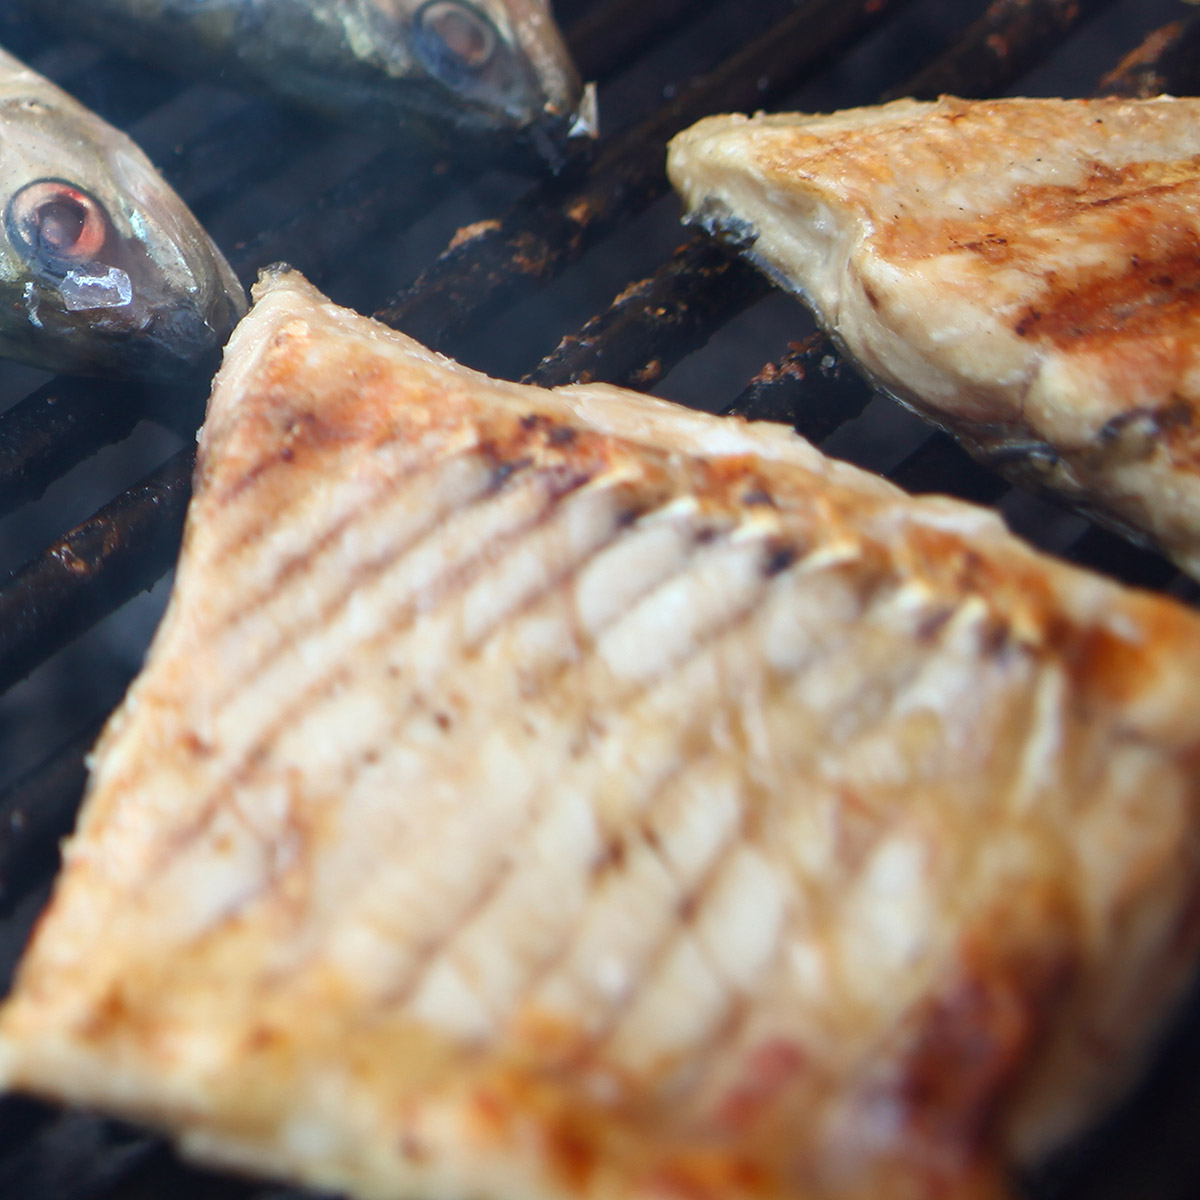 Pinot Grigio Food suggestion - Grilled Fish